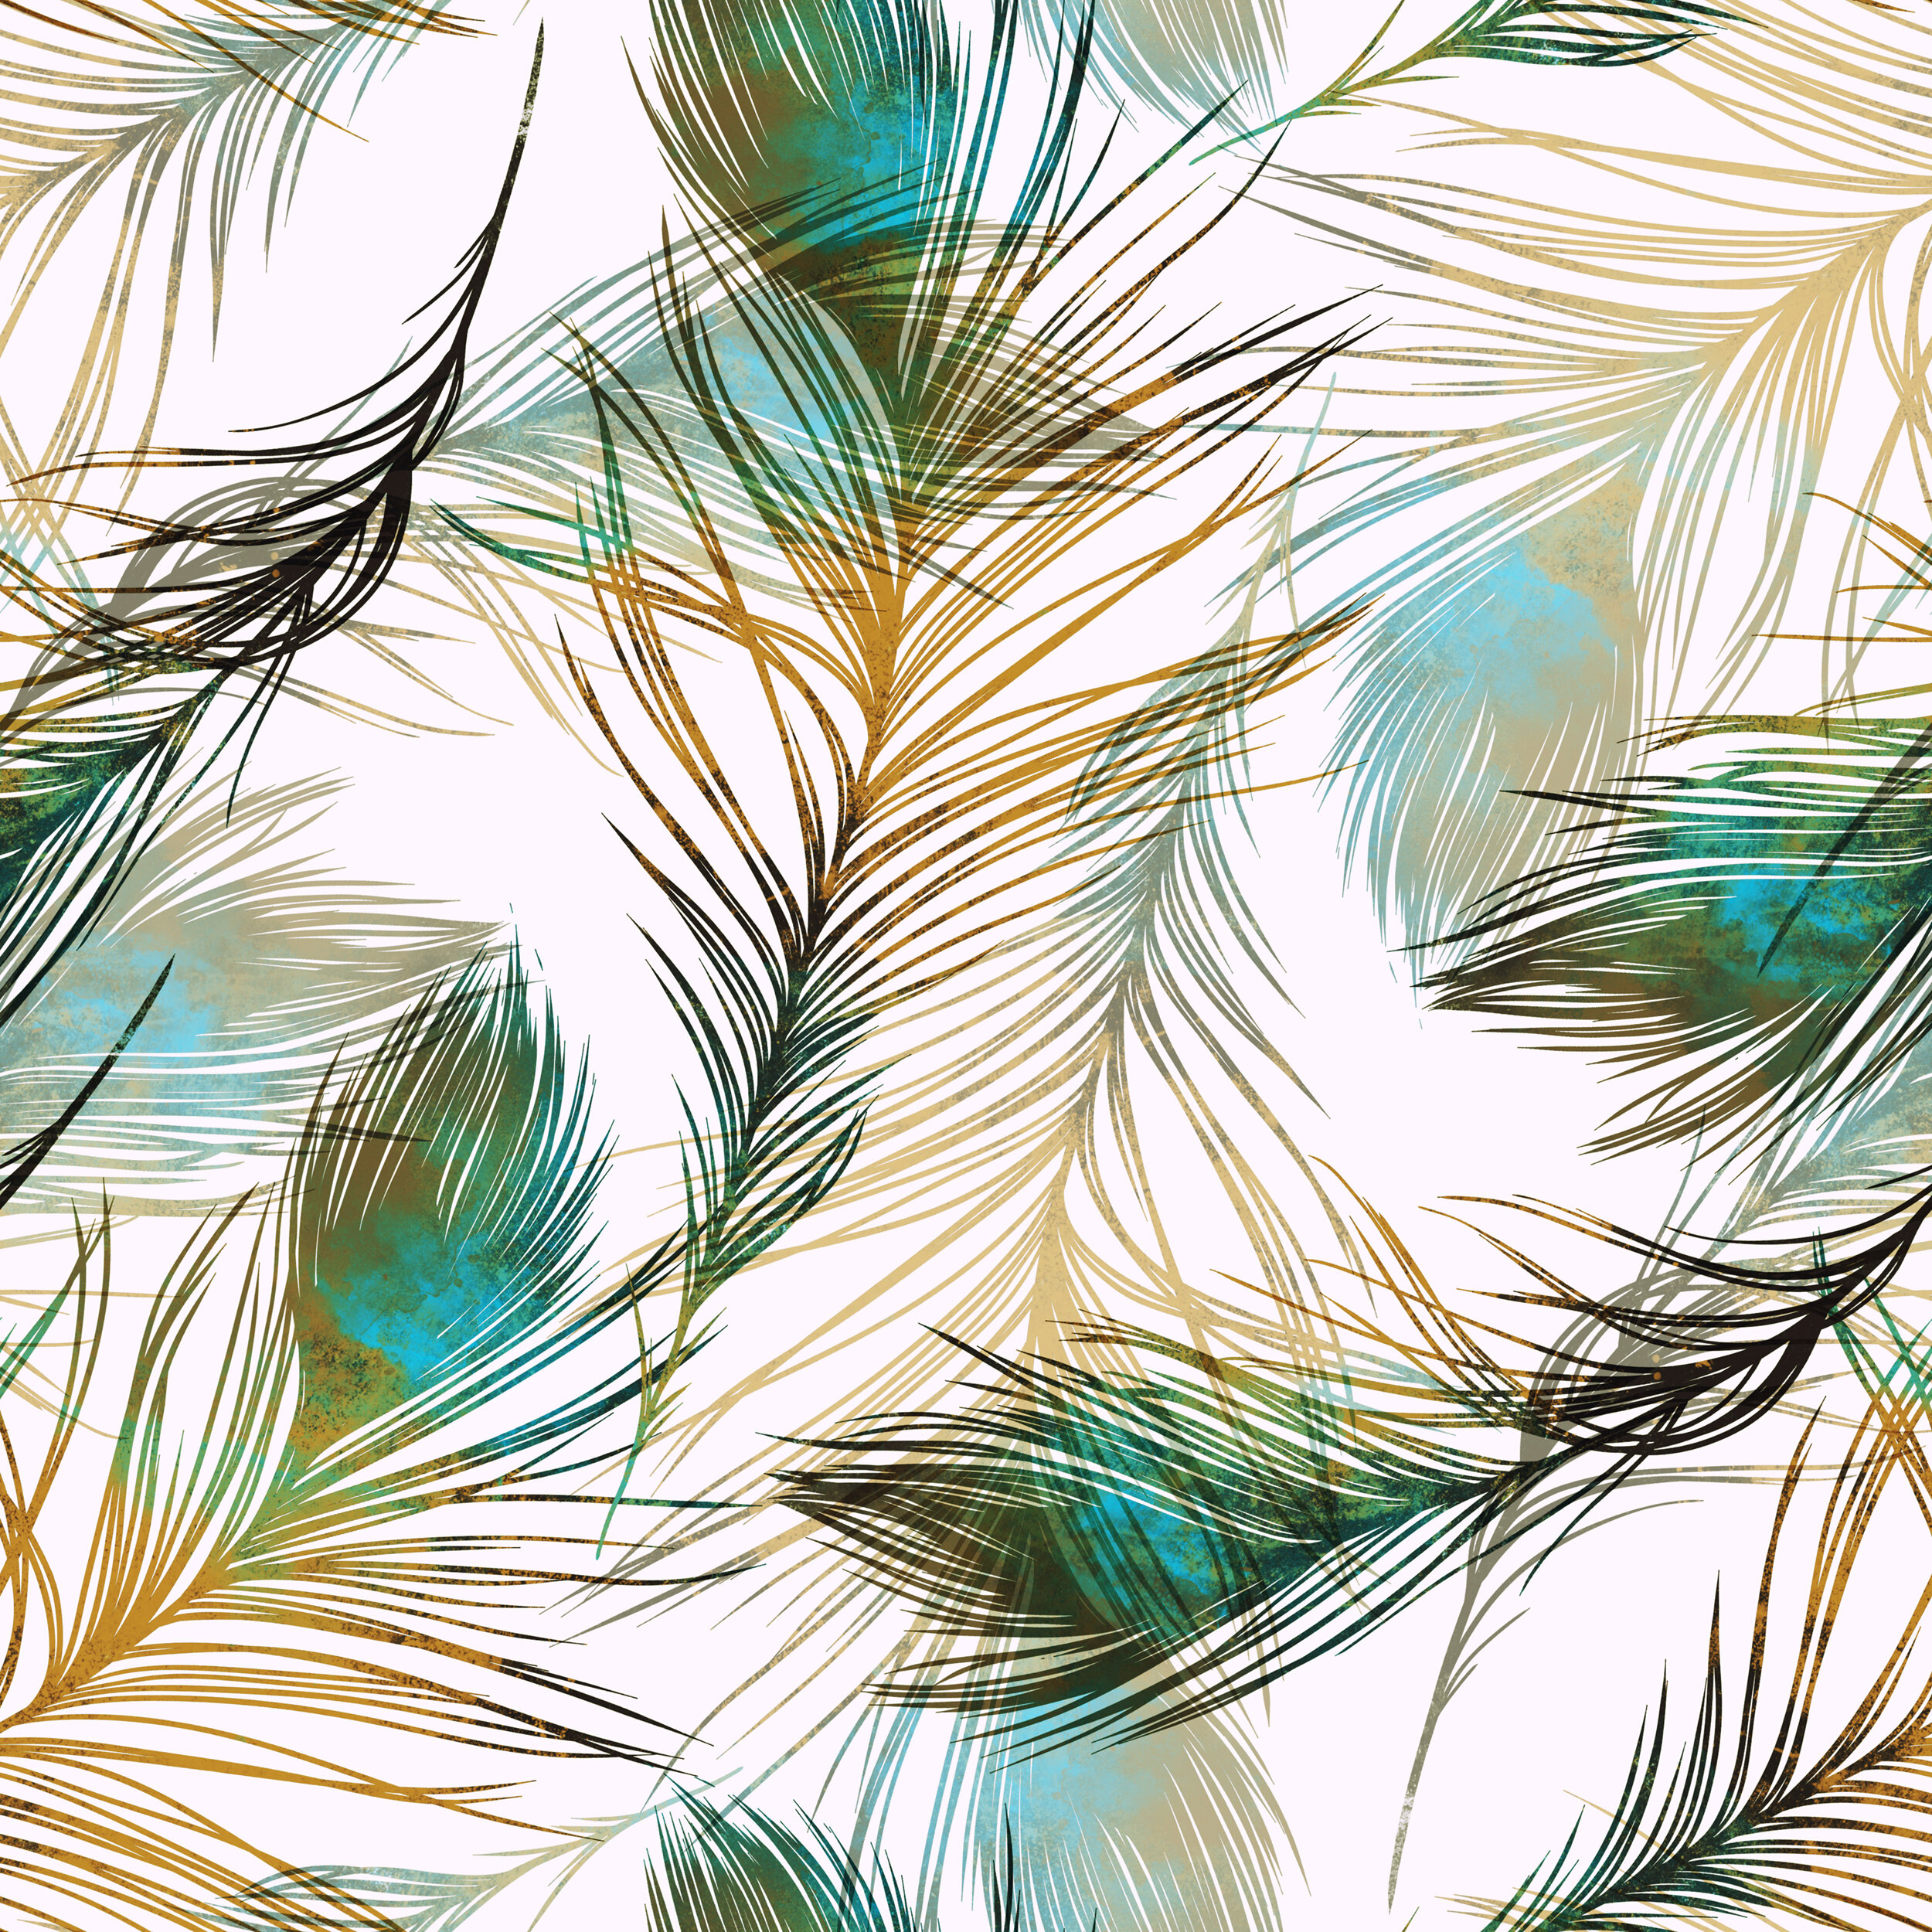 Bayou Breeze Alaysia Peacock Feathers 10 L X 24 W Peel And Stick Wallpaper Roll Wayfair